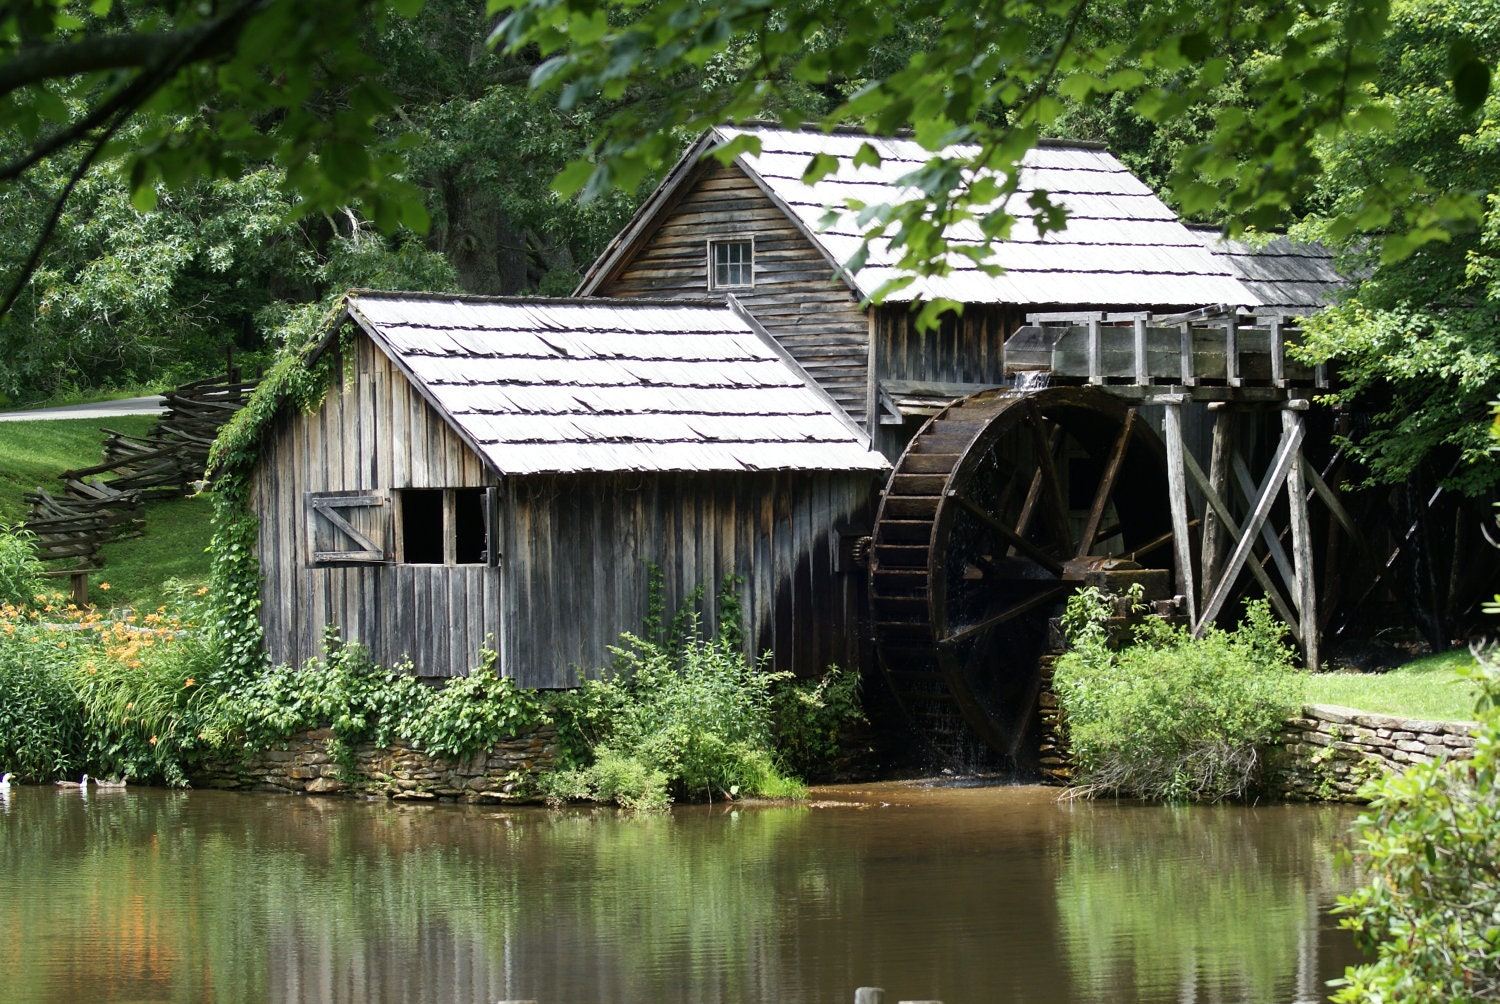 "Mabry Grist Mill, Landscape Photography, Historic, Army Veteran, Blue Ridge Parkway-2"" - HLRoperPhotography"